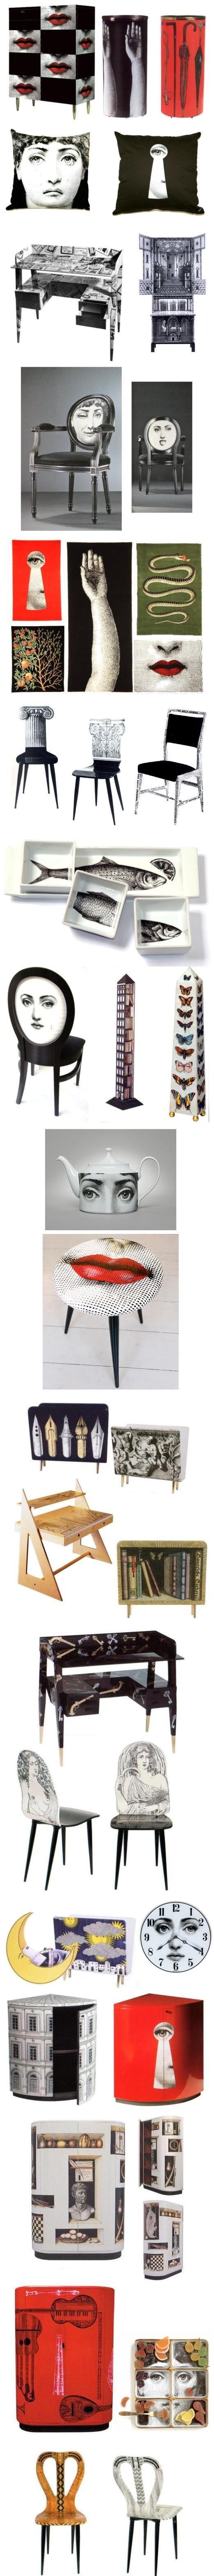 fornasetti furnitures